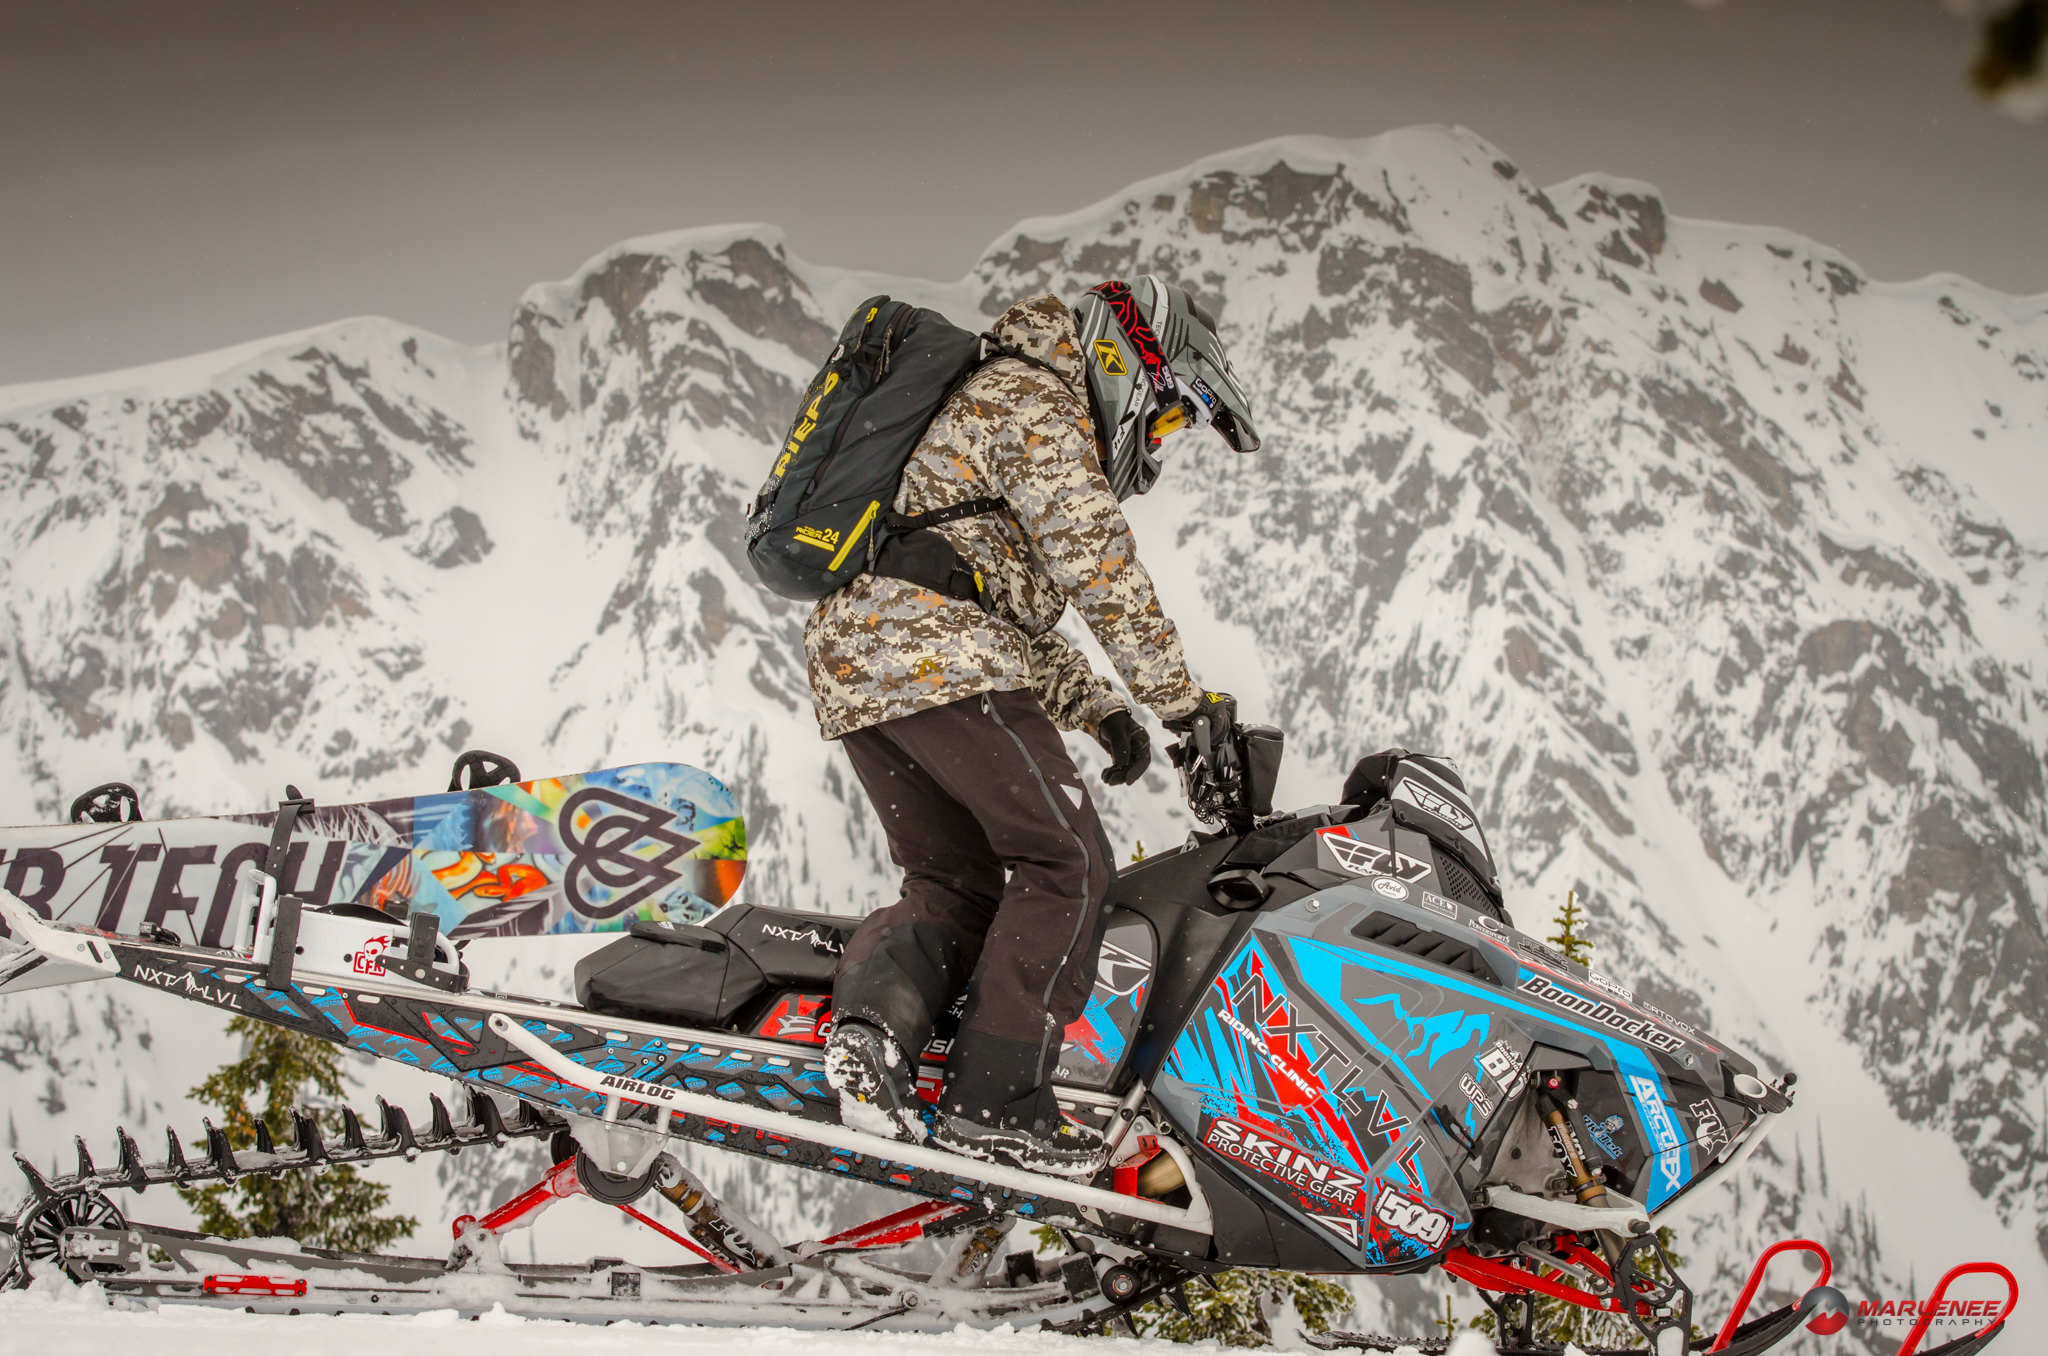 Dan Adams tests out the new Klim crossover gear in Revelstoke, BC